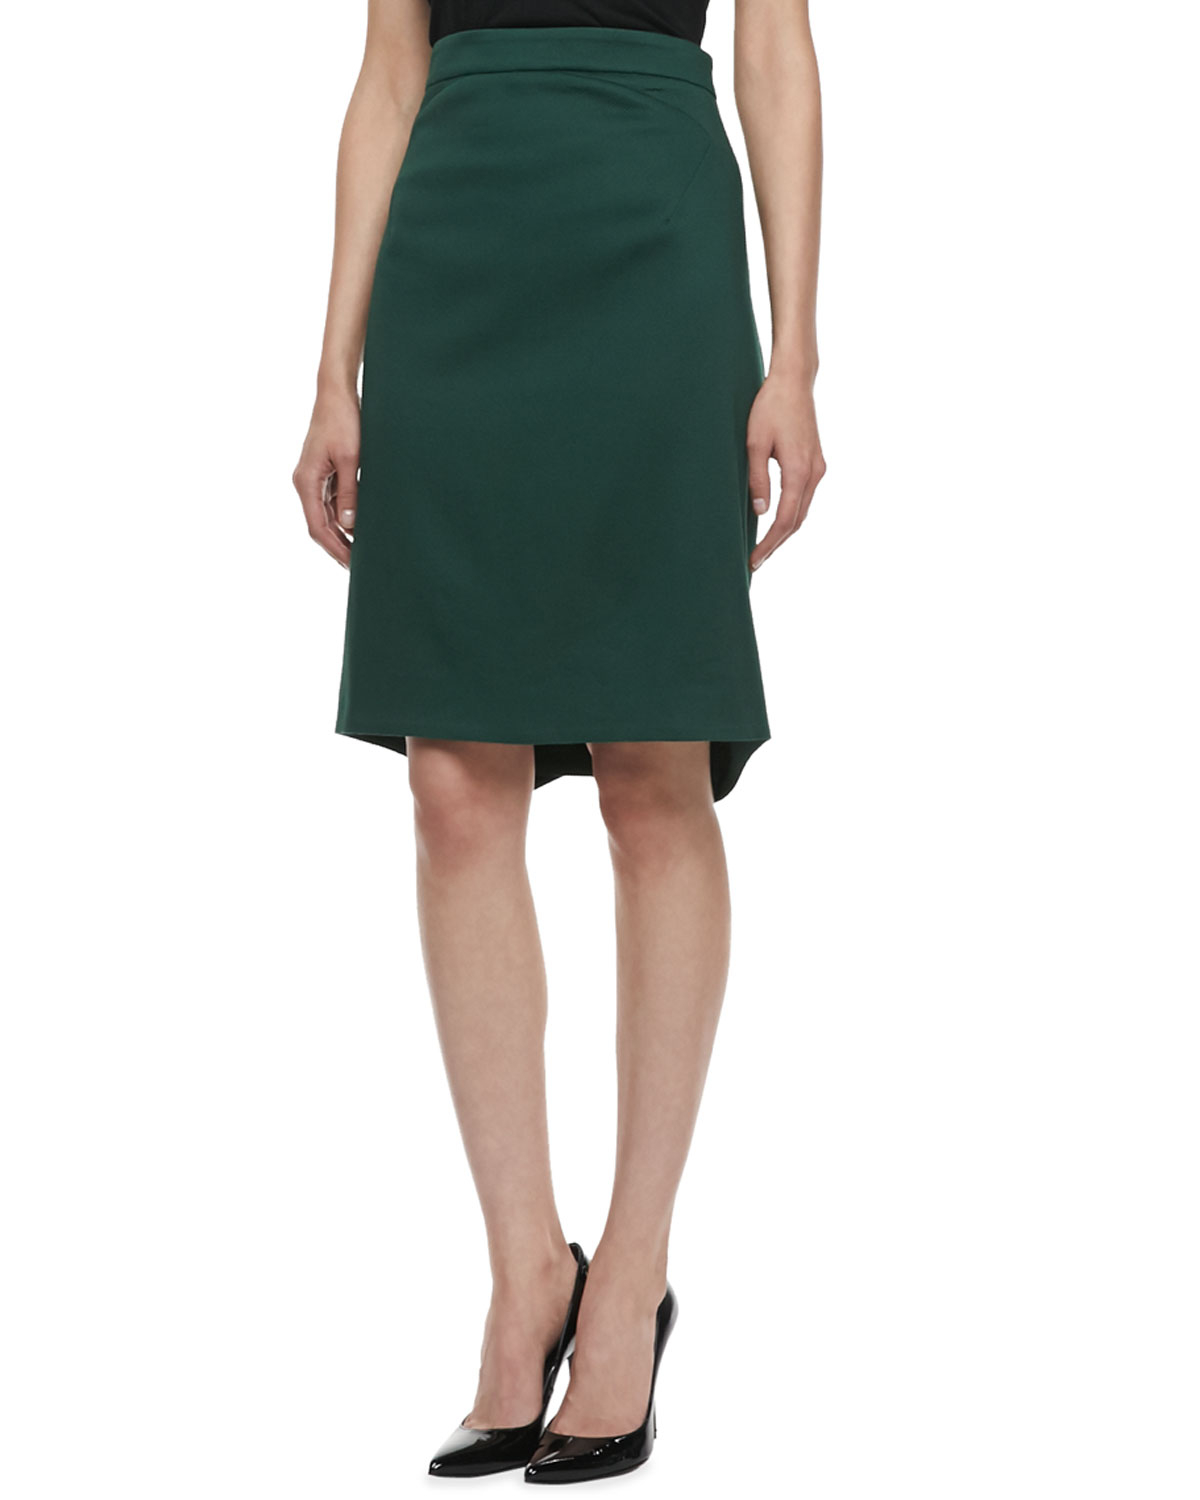 Zac posen Textured Pencil Skirt Dark Green in Green | Lyst